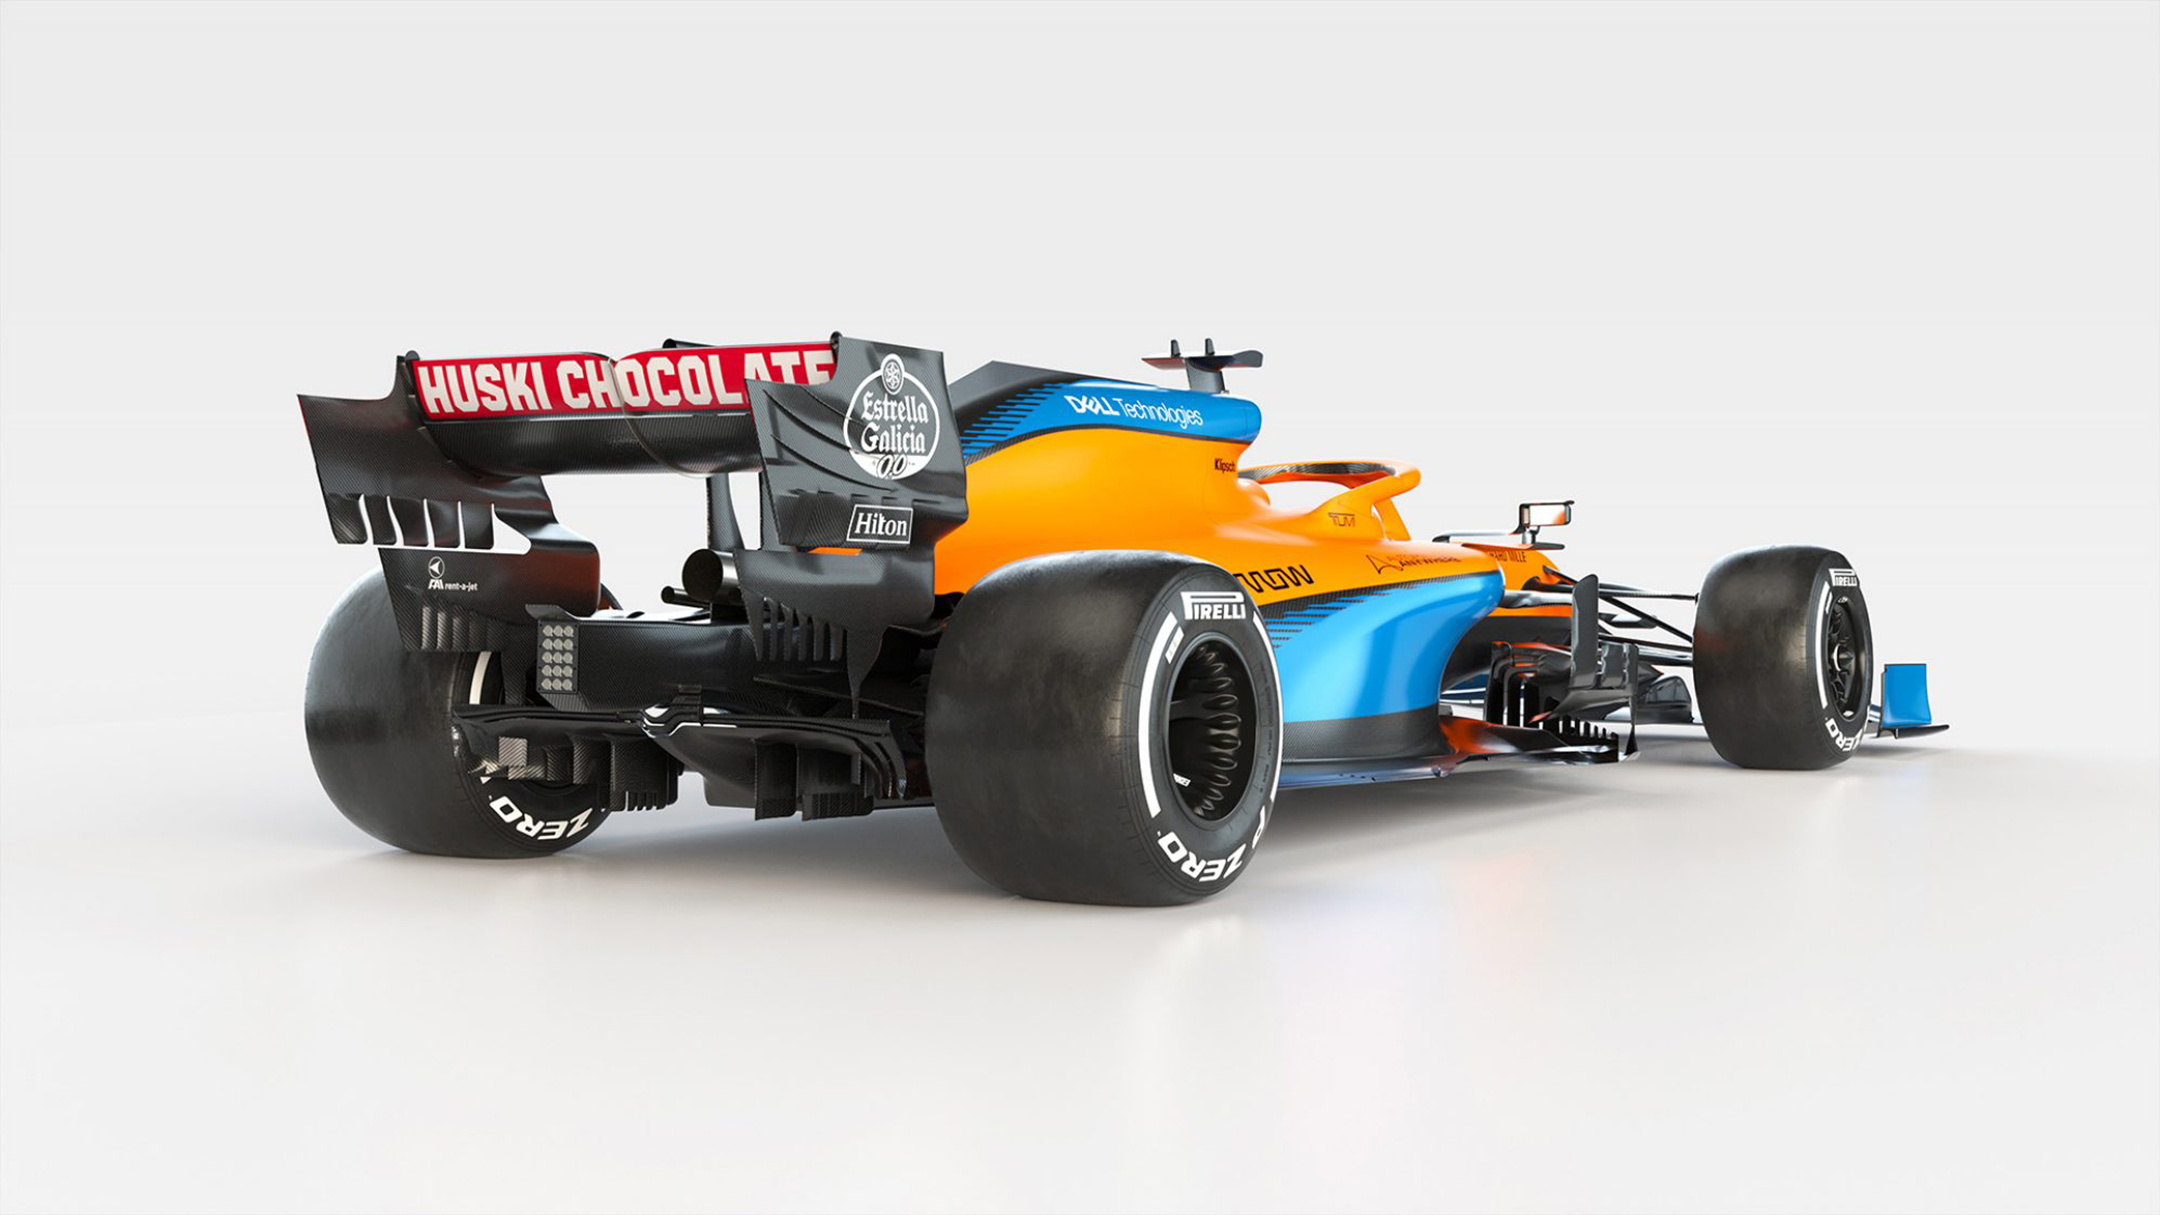 F1 - McLaren Racing - MCL35 - 2020 - rear side-face - Renault E-Tech 20 - 35A engine - McLaren Applied Technologies